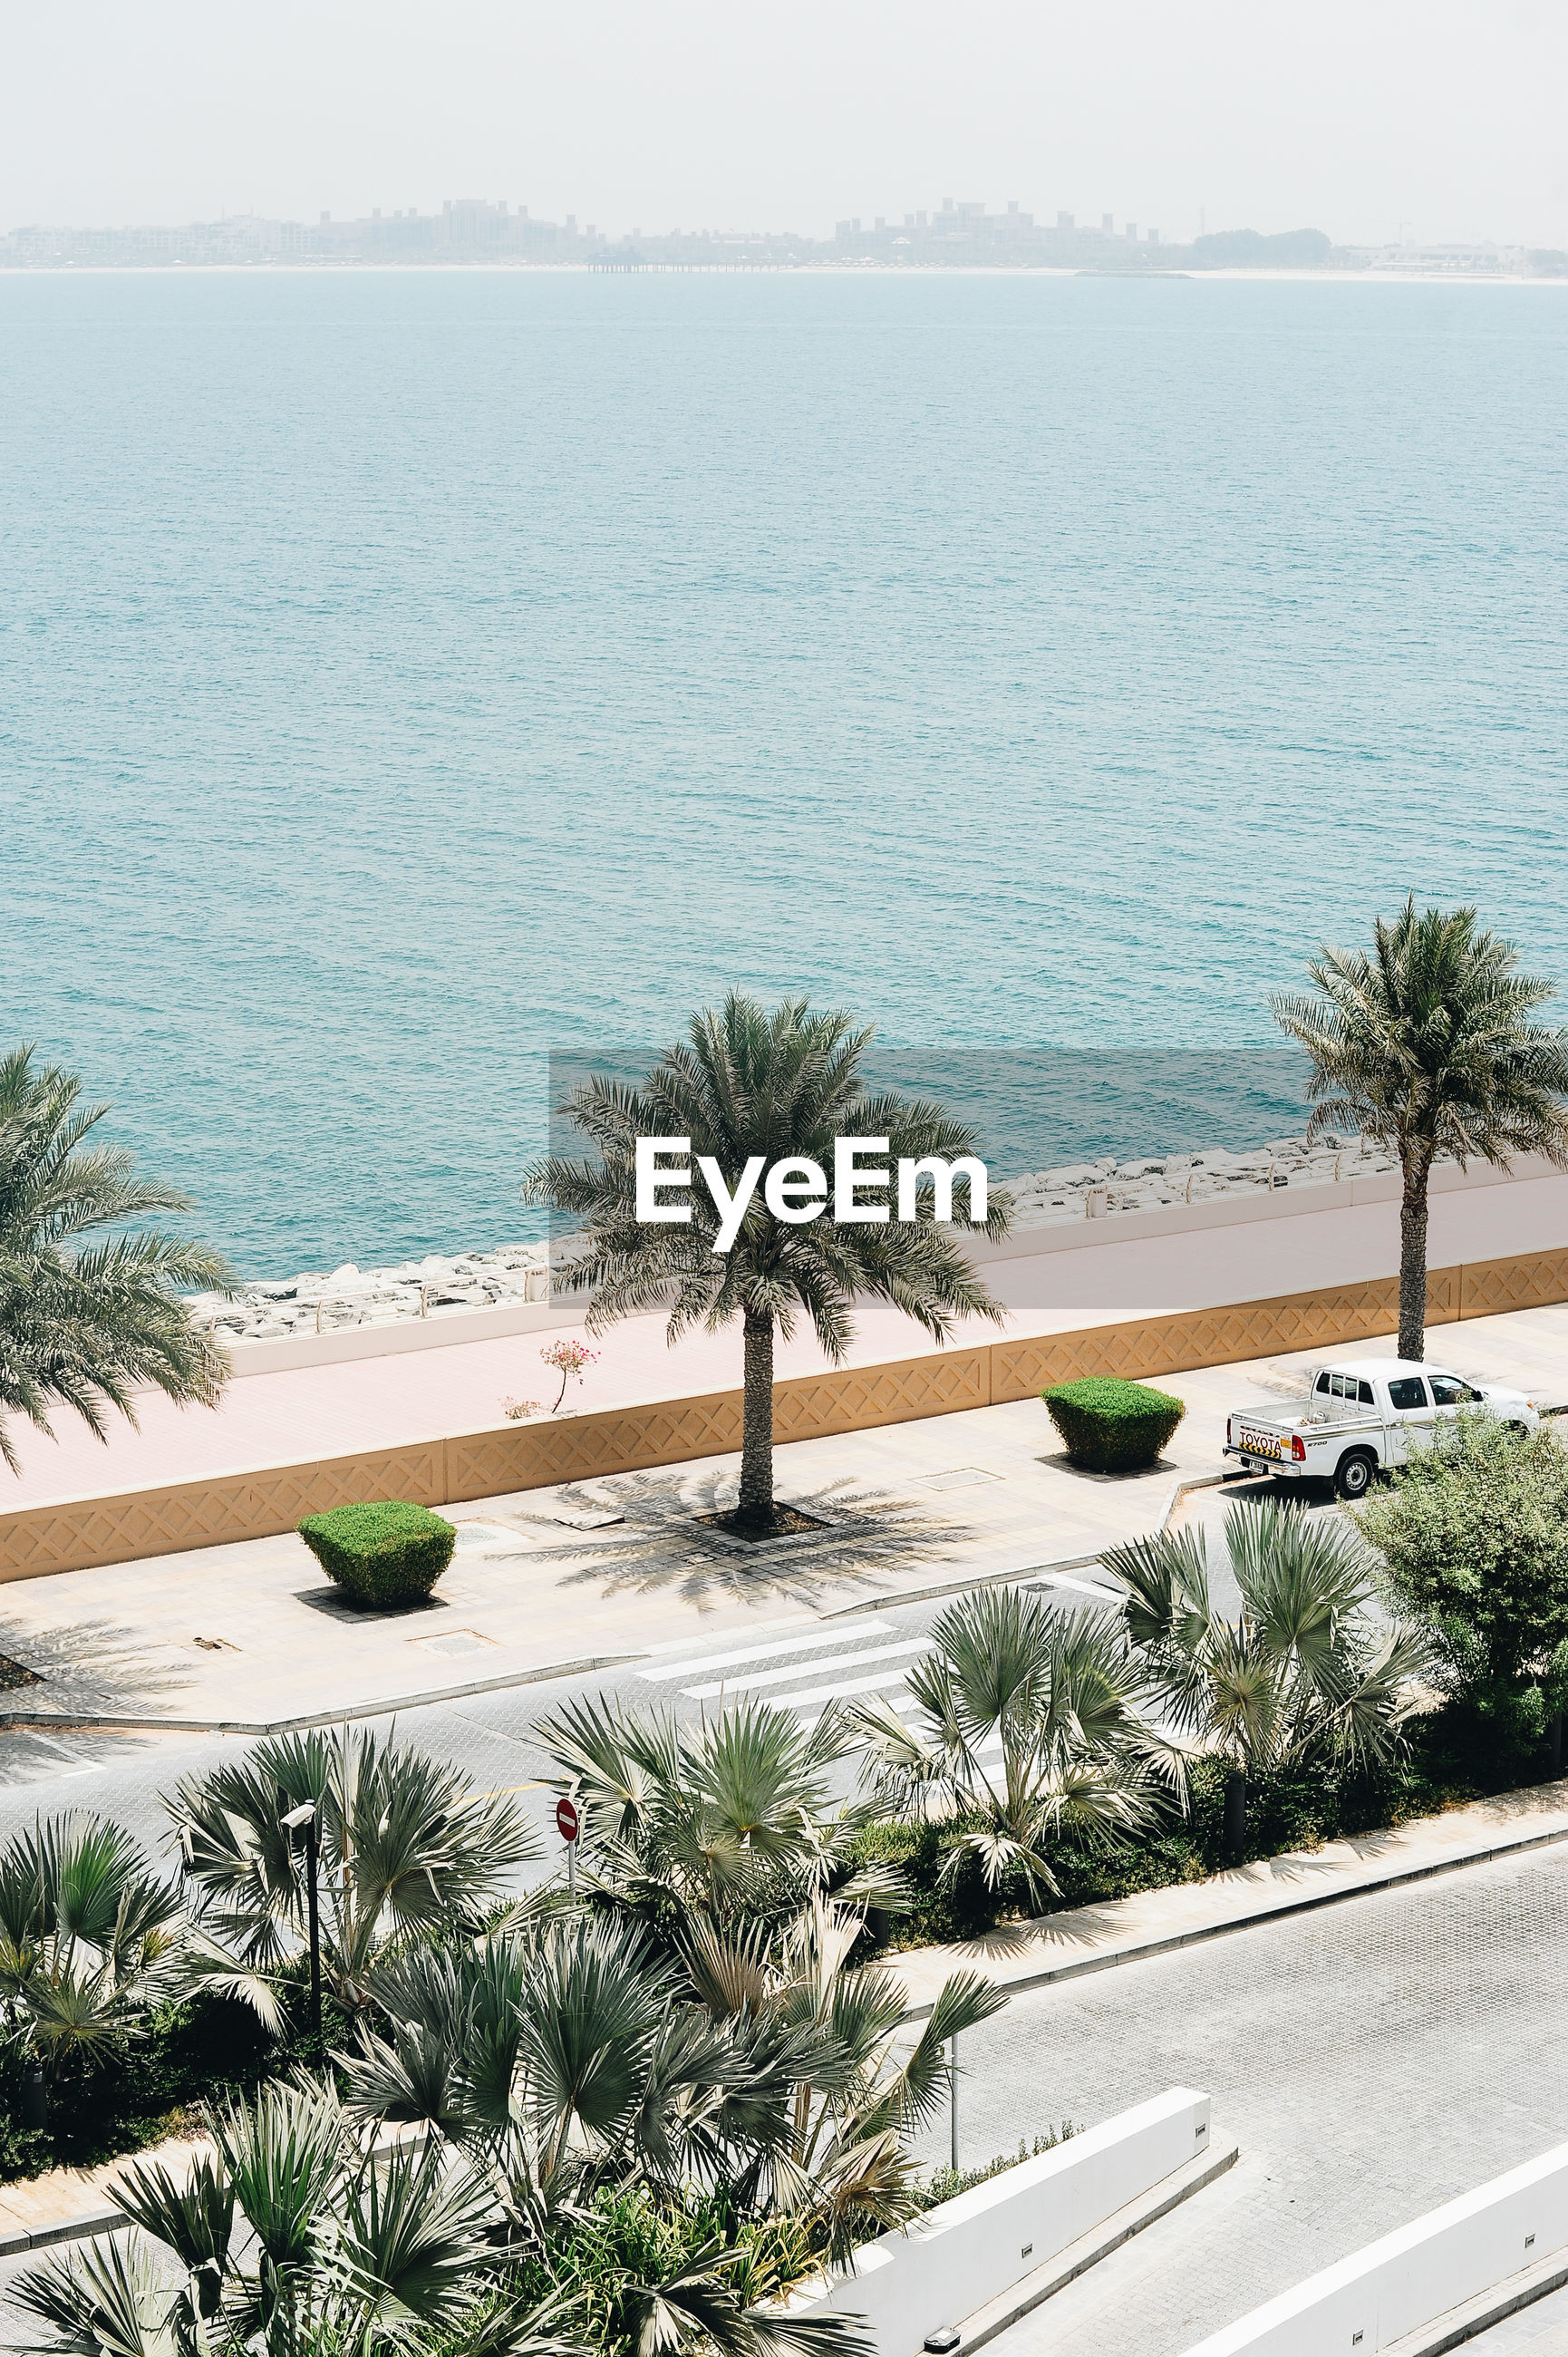 HIGH ANGLE VIEW OF PALM TREE BY SEA